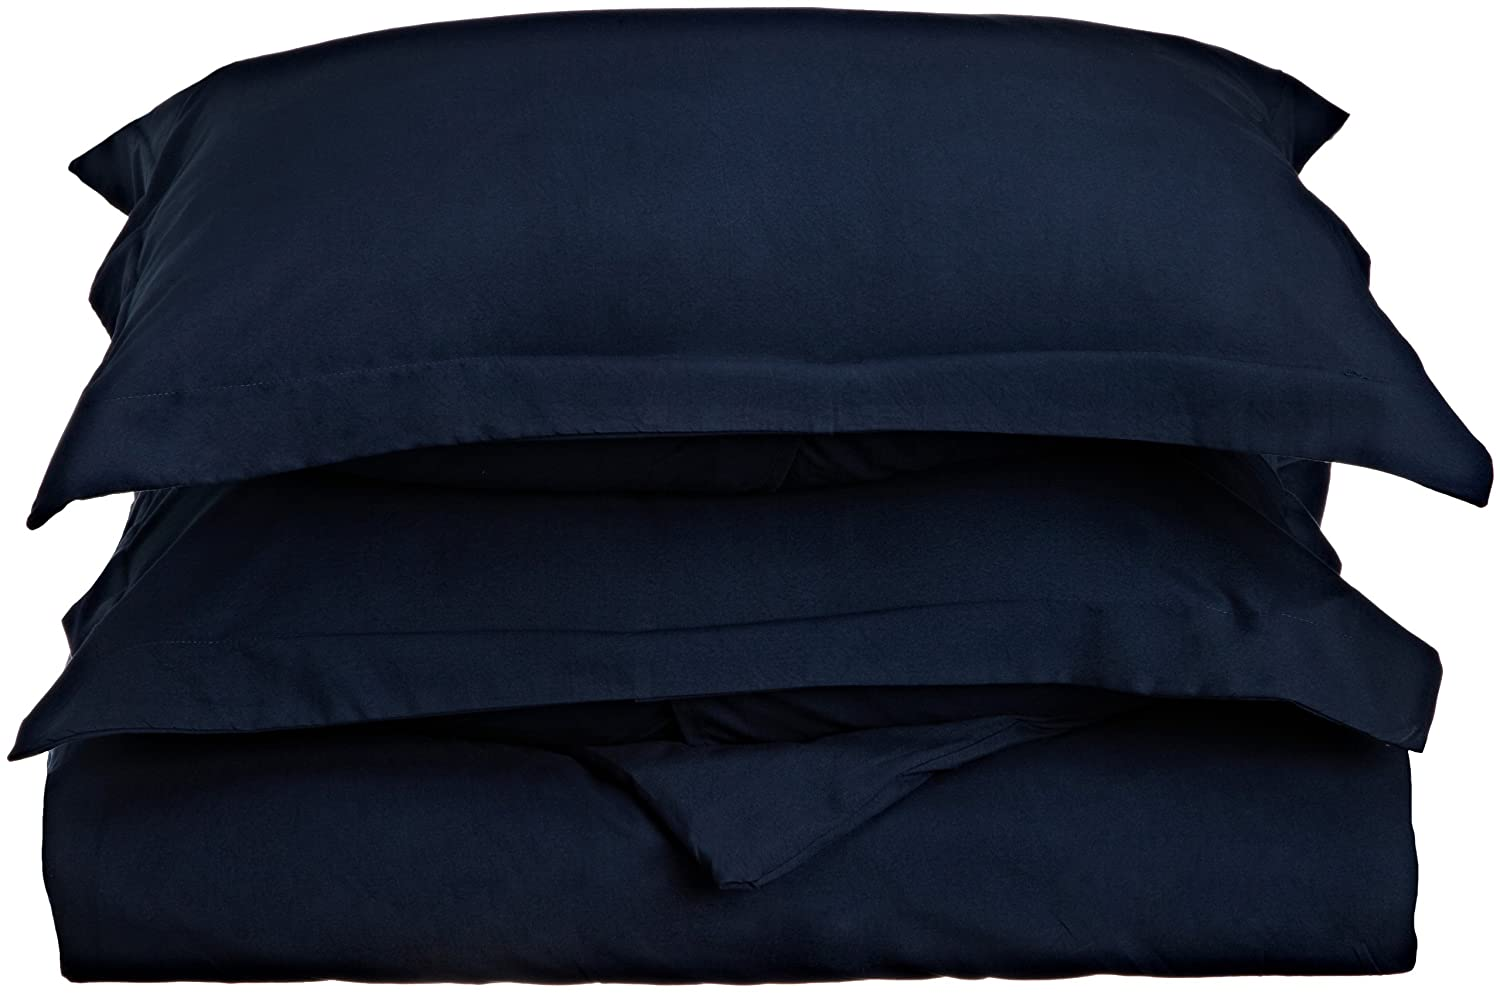 Lamma Loe's Silky Soft Solid Microfiber Luxury 3-Piece Duvet Cover Set, Includes Pillow Shams-King, Dark Navy Blue